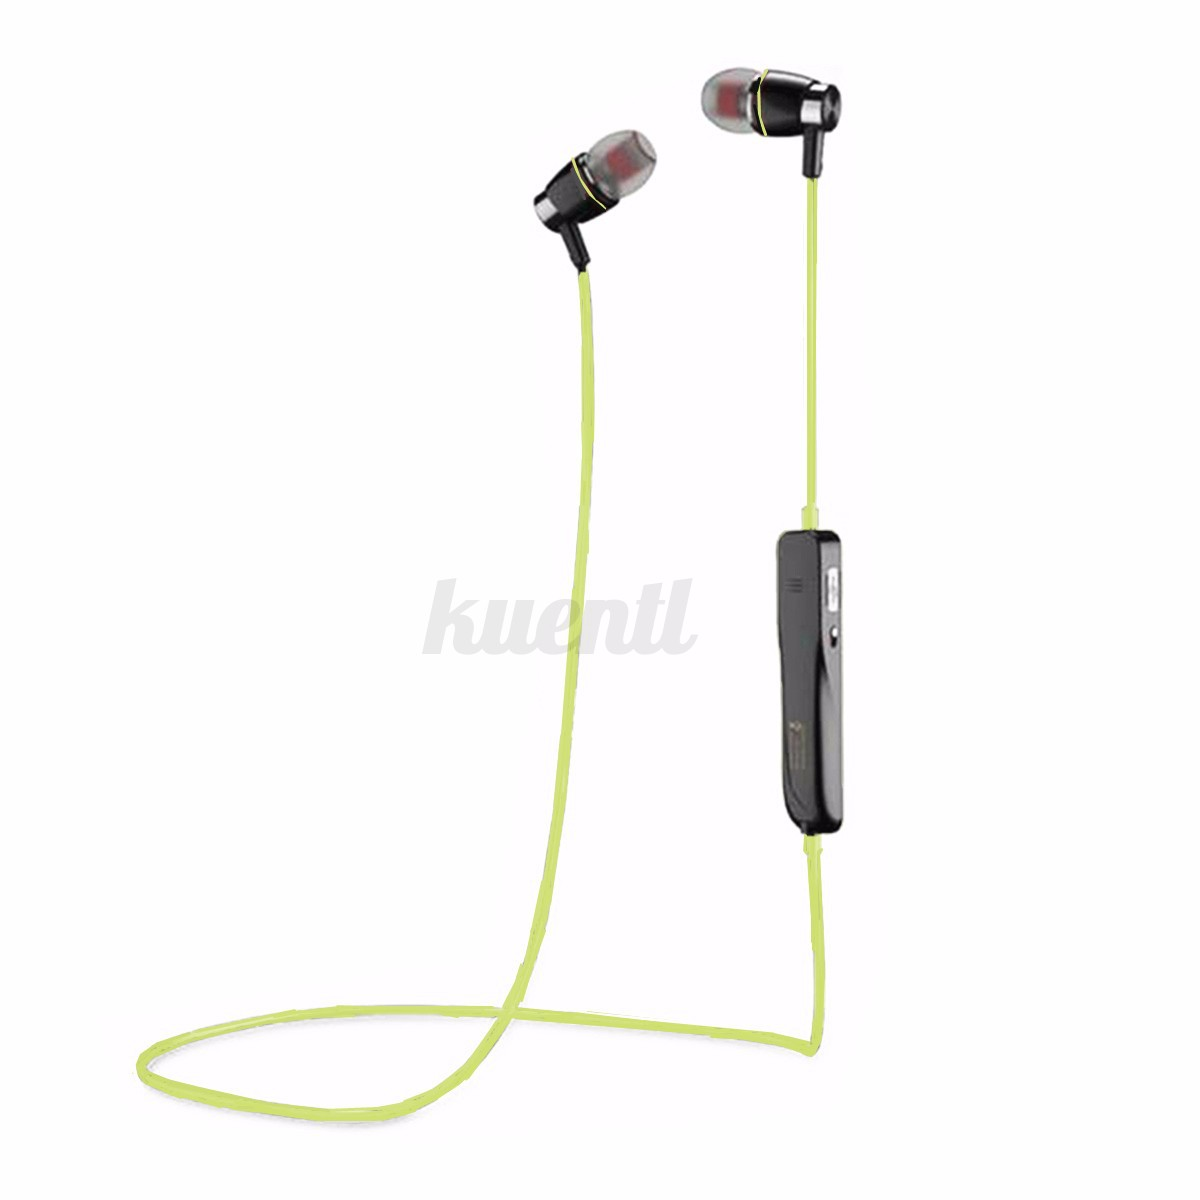 sans fil bluetooth 4 1 sport stereo ecouteur casque headset pr iphone 5 5s 6 6s ebay. Black Bedroom Furniture Sets. Home Design Ideas